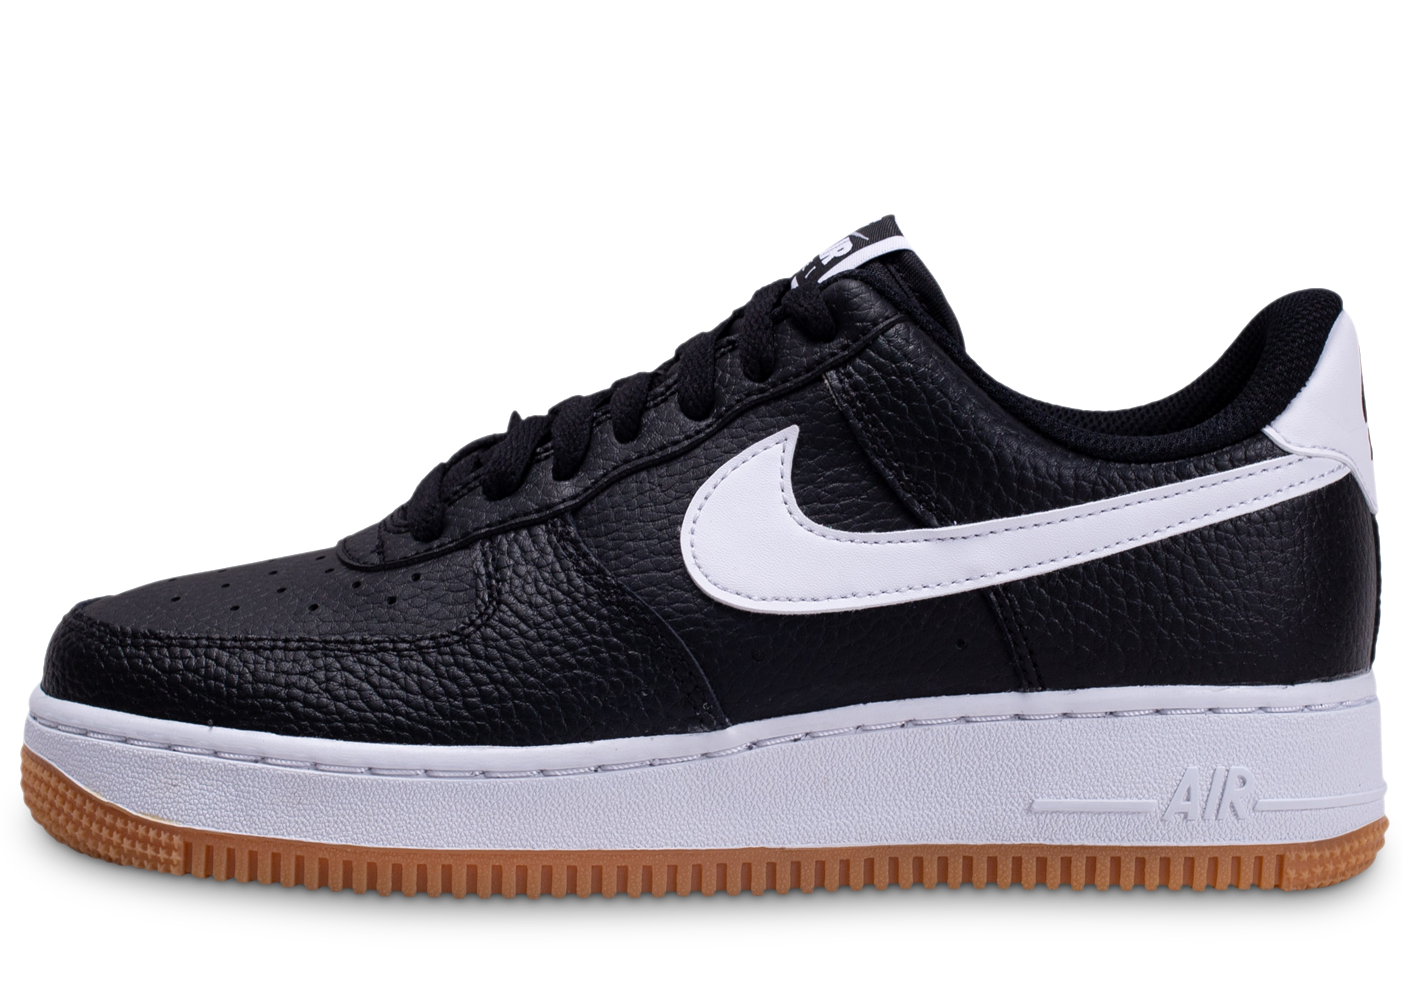 Nike homme air force 1 blanc noir gum baskets